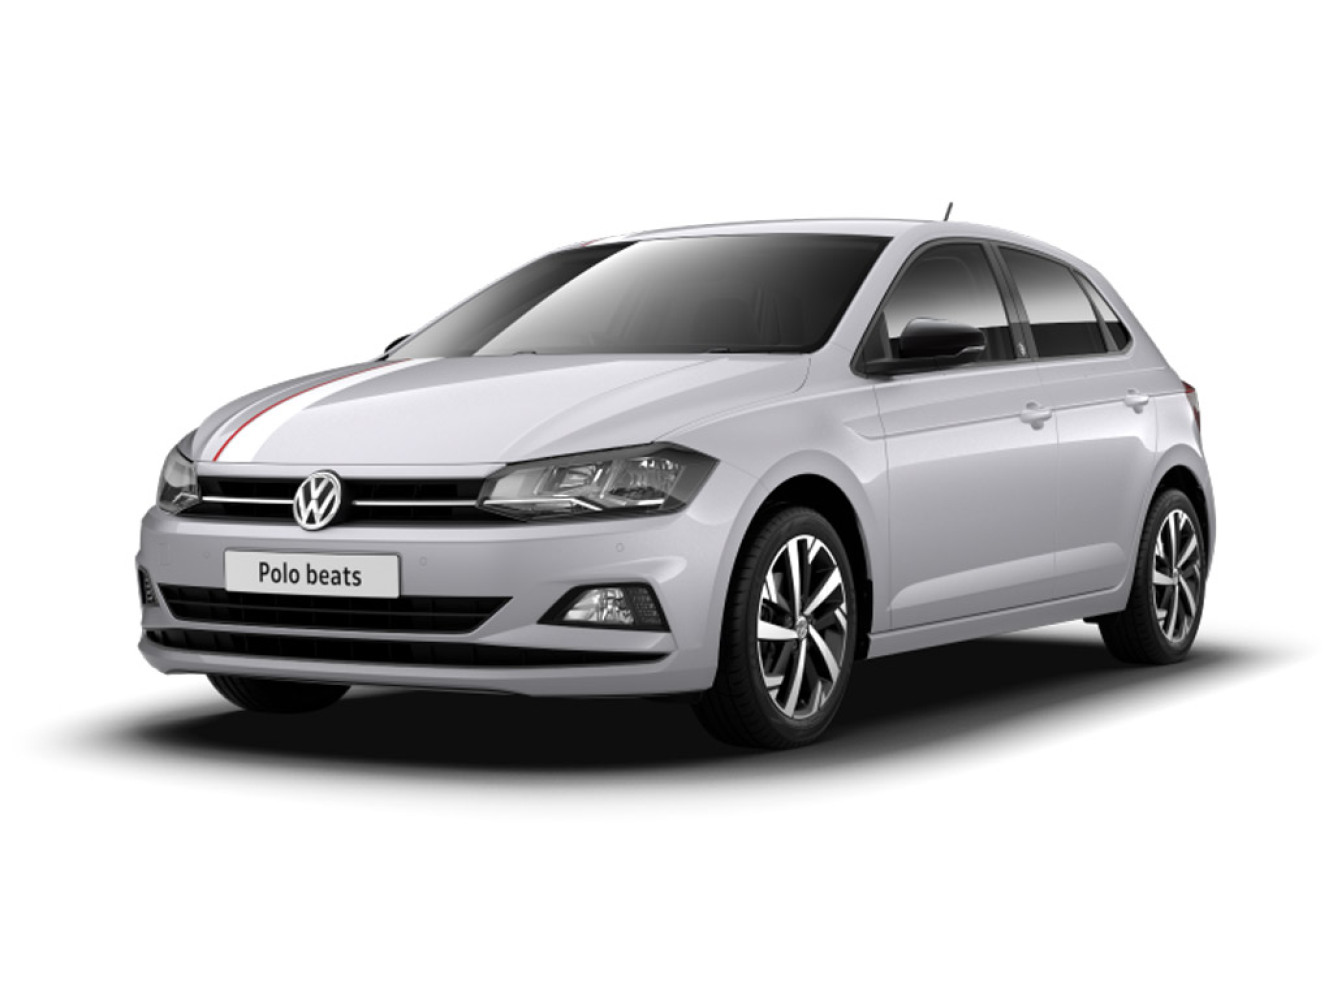 new volkswagen polo 1 0 tsi 95 beats 5dr dsg petrol. Black Bedroom Furniture Sets. Home Design Ideas